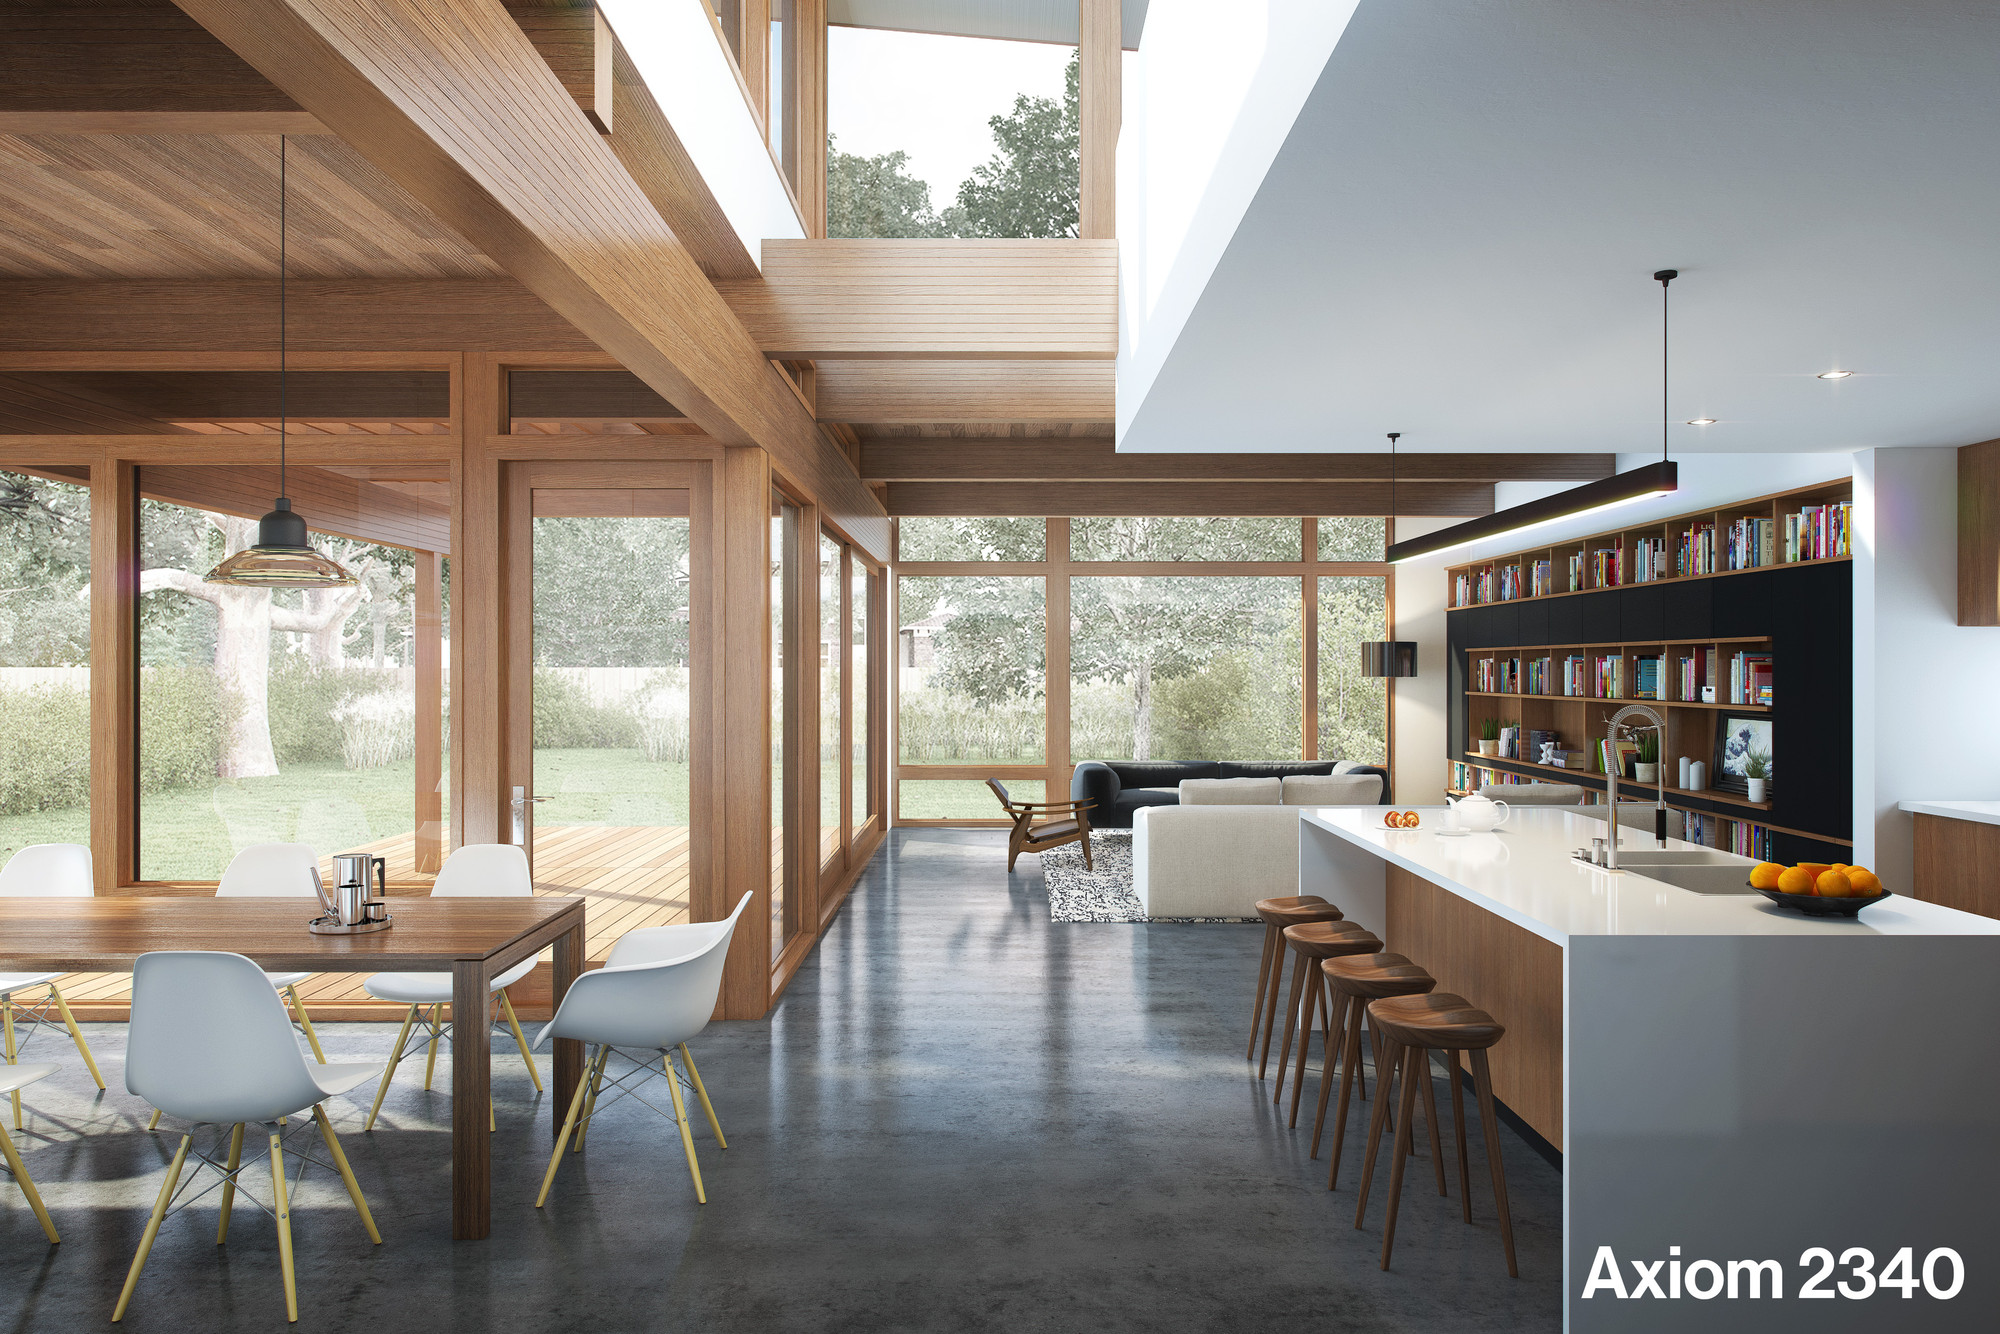 Gallery of Dwell Partners with Turkel Design for Modern Prefab